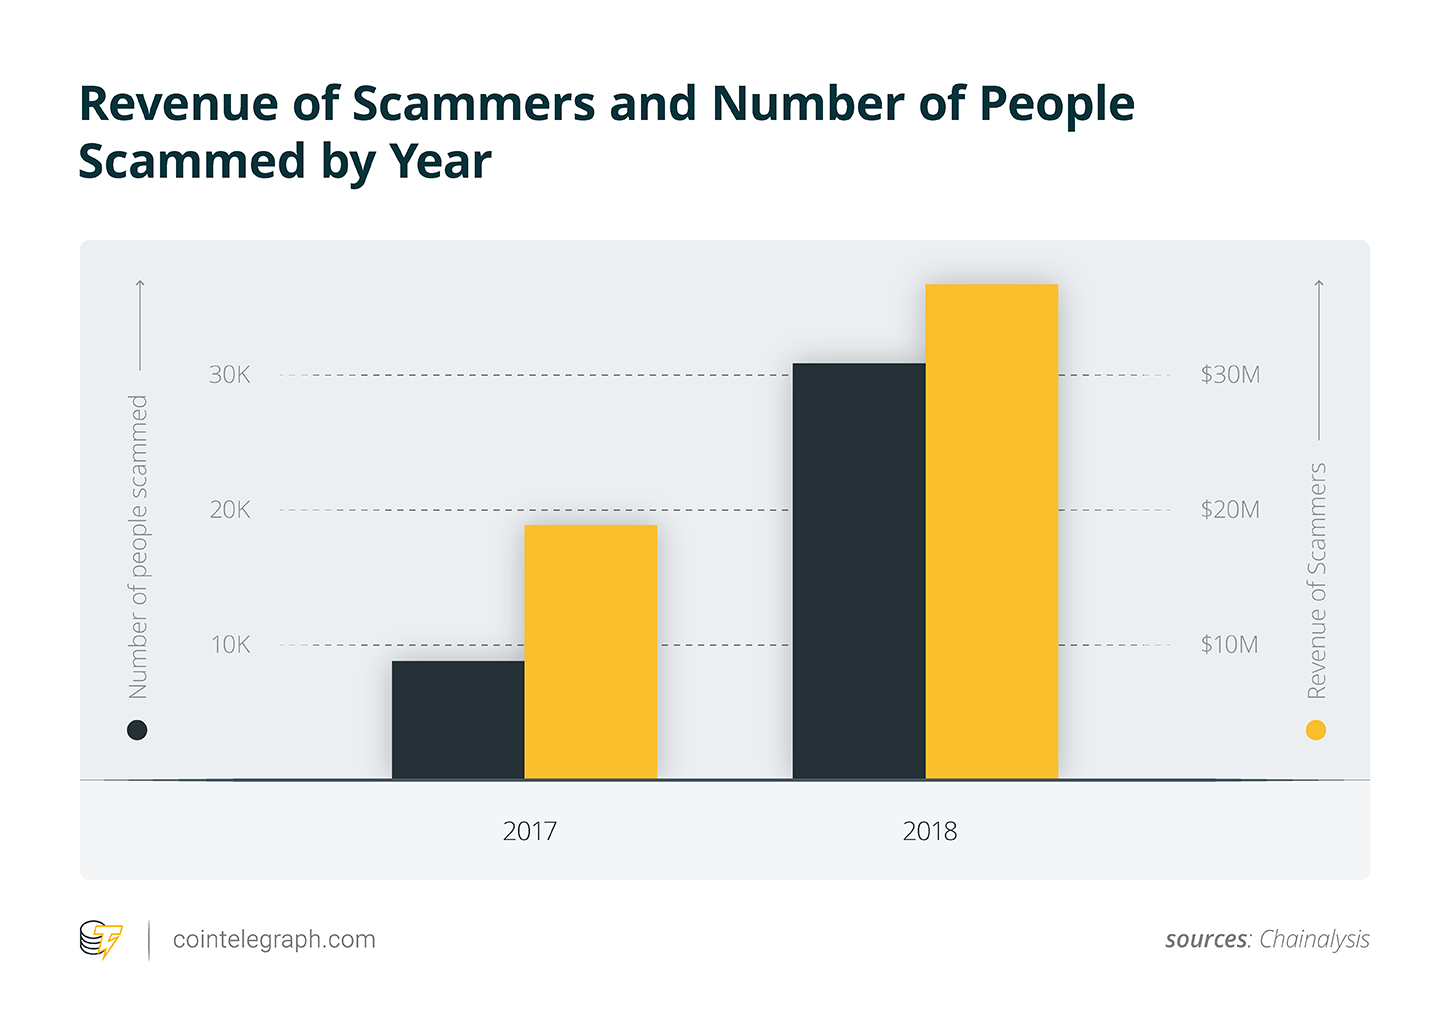 Revenue of ETH-involving scams and number of scam victims per year